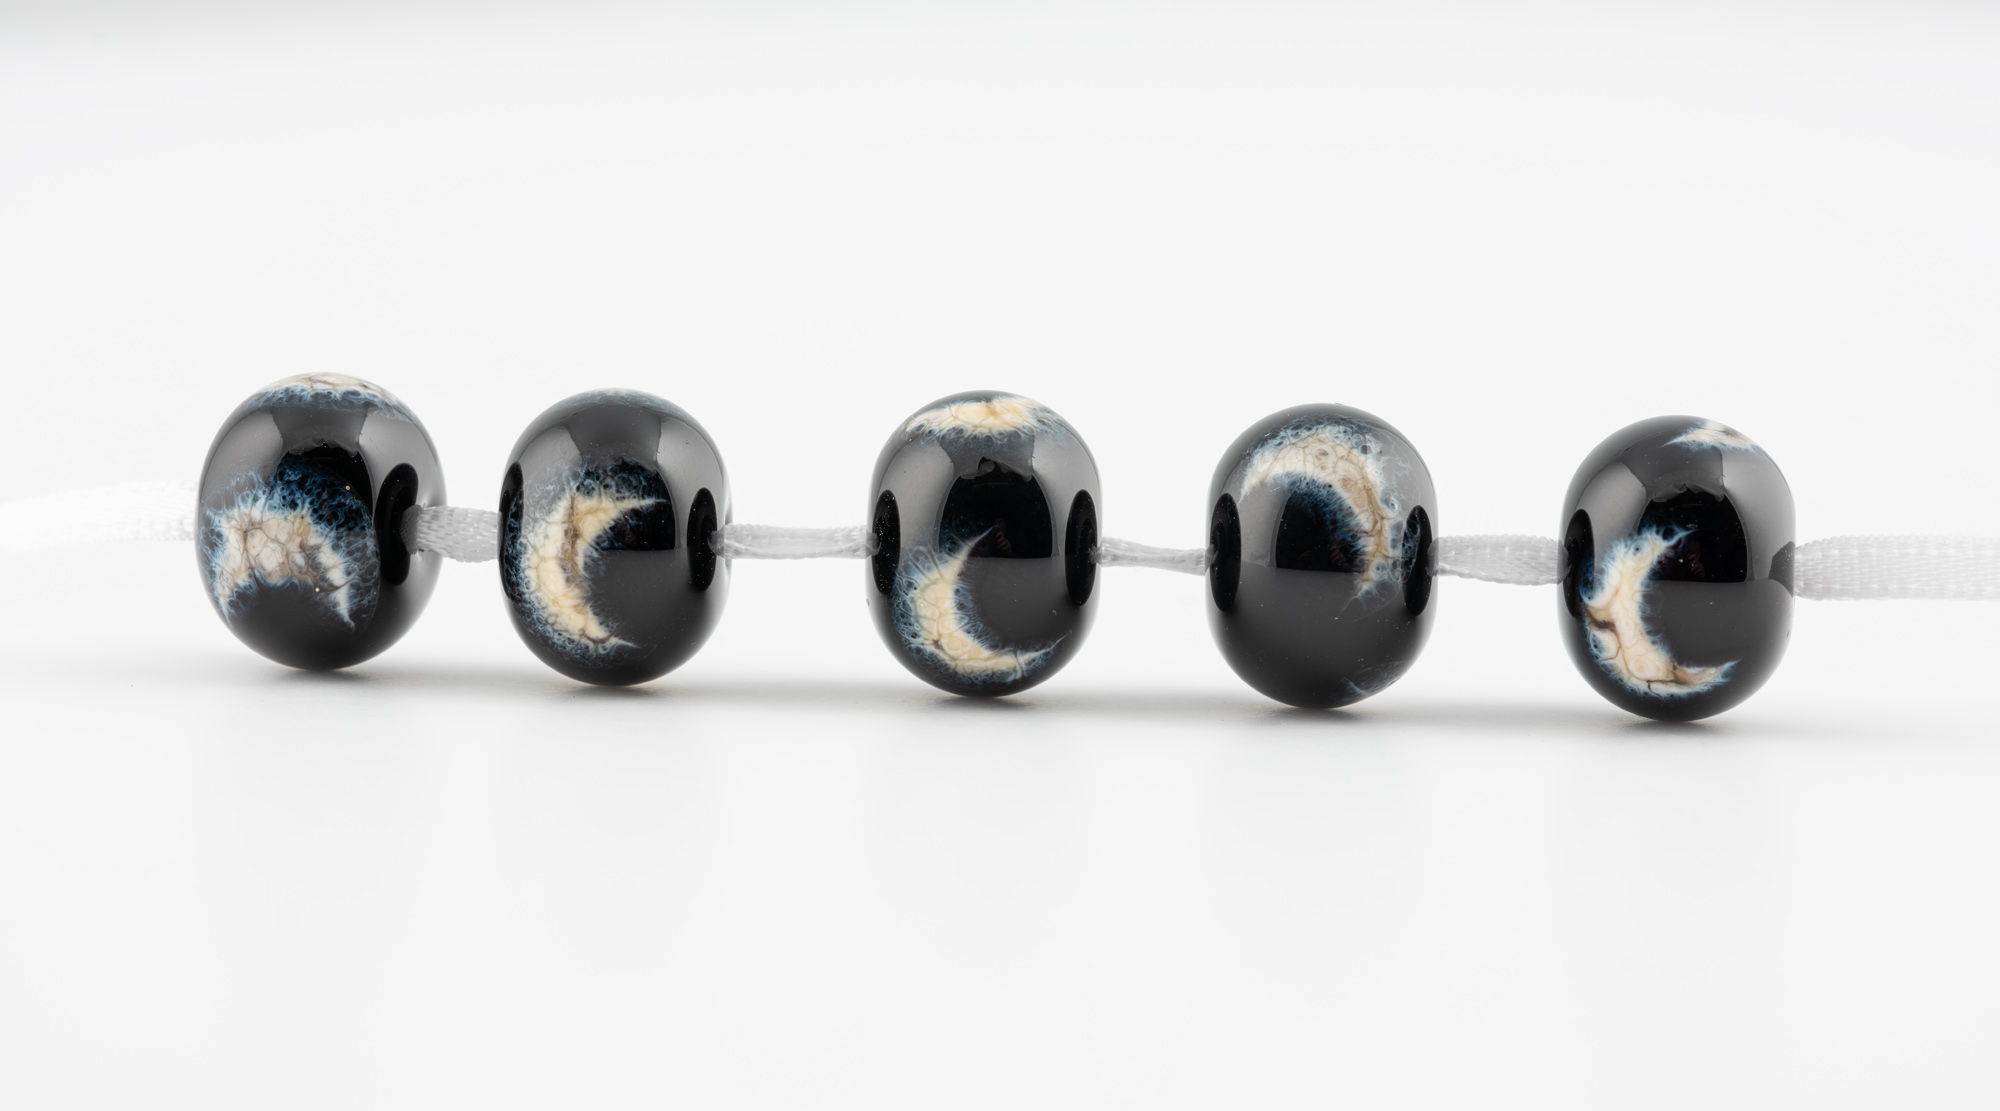 Here are the 'night sky' beads commissioned by Kate to use in embellishments for a range of bags she was designing.